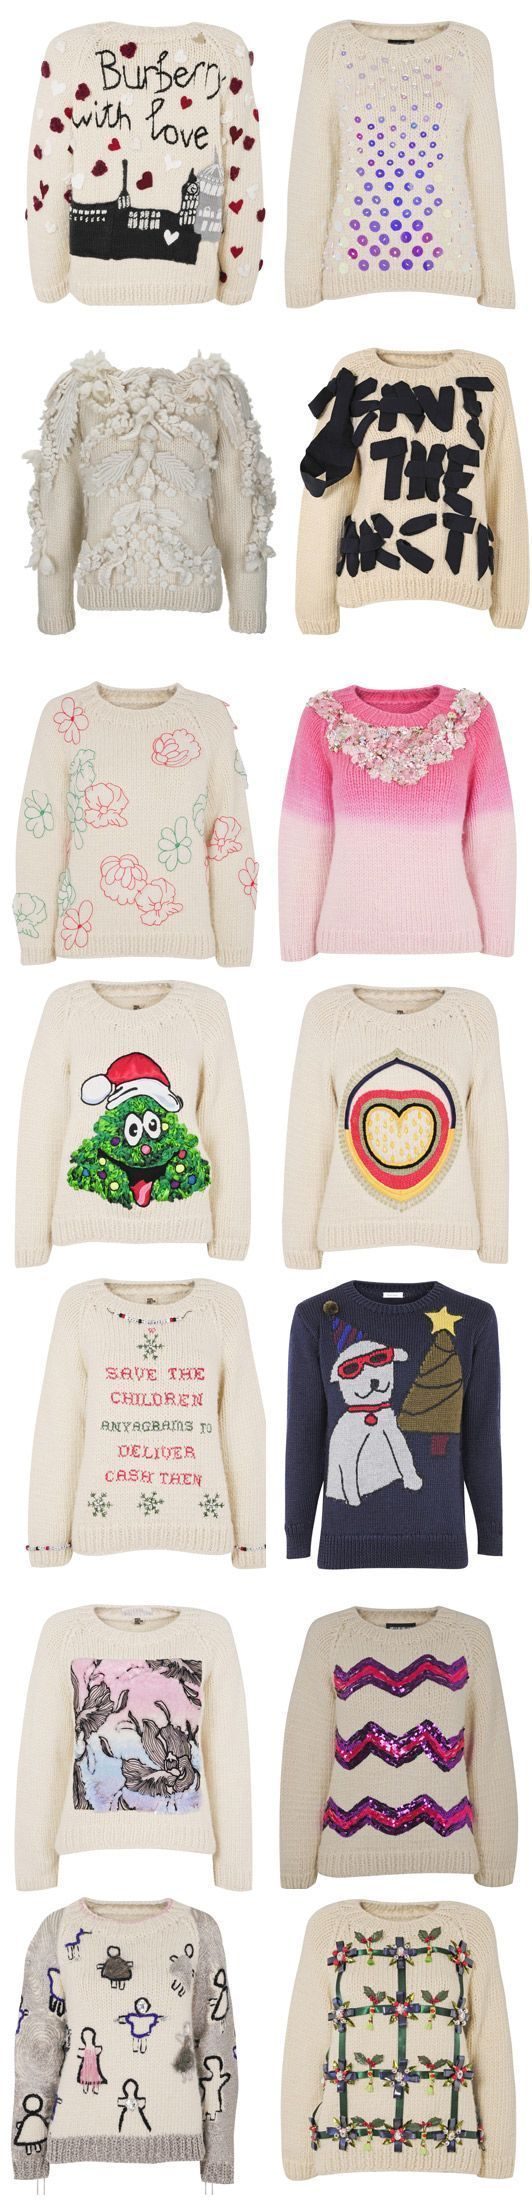 Christmas Jumper for Save the Children